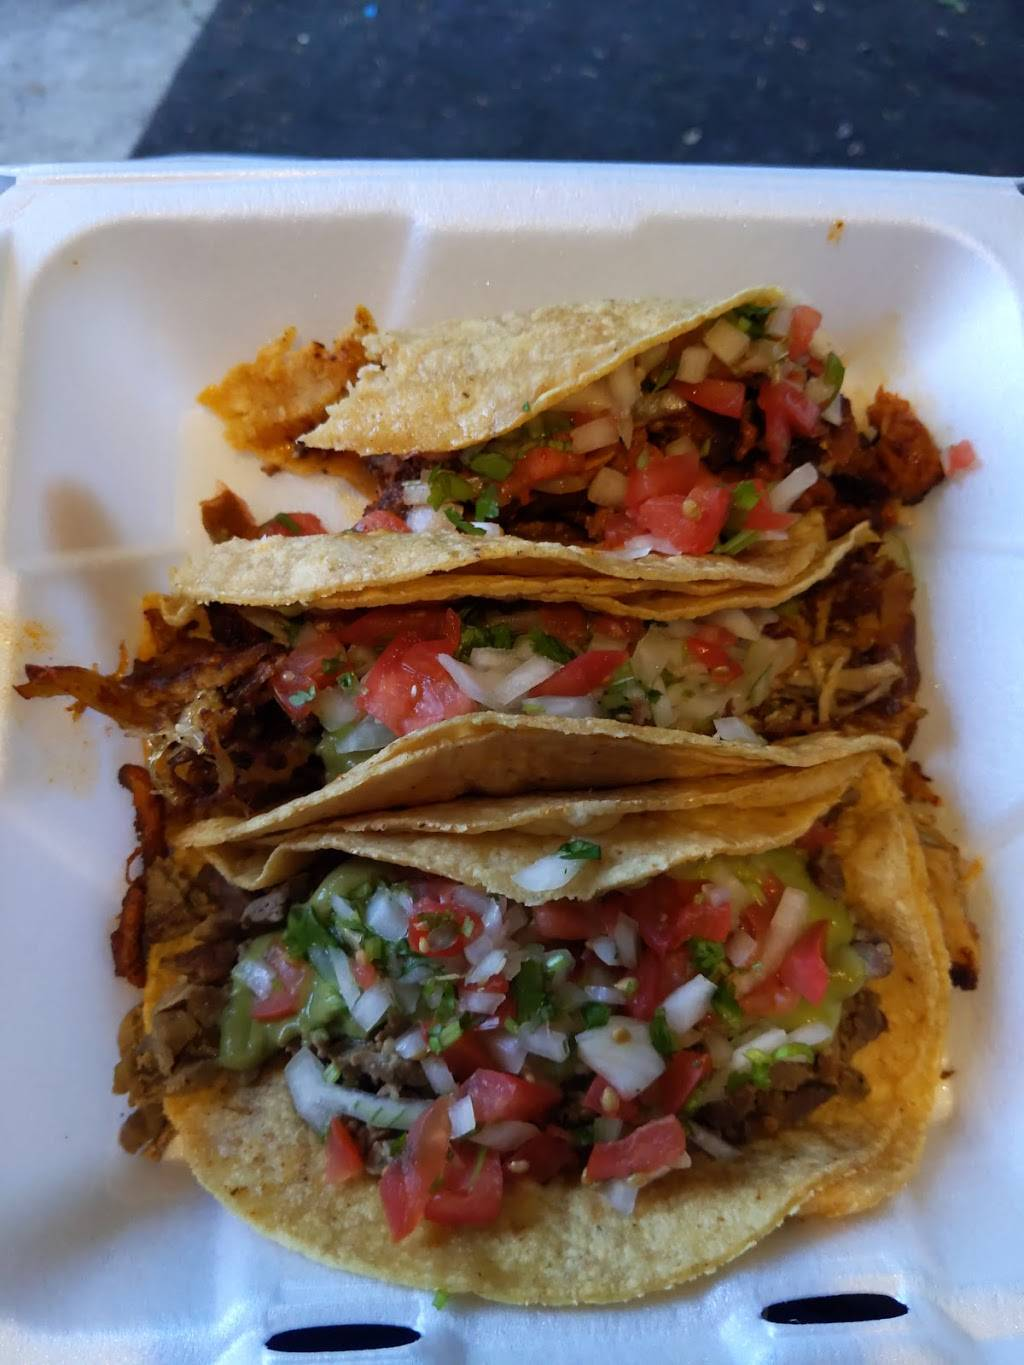 Taco Villas | restaurant | 501 S Main St, Bellefontaine, OH 43311, USA | 9374049174 OR +1 937-404-9174